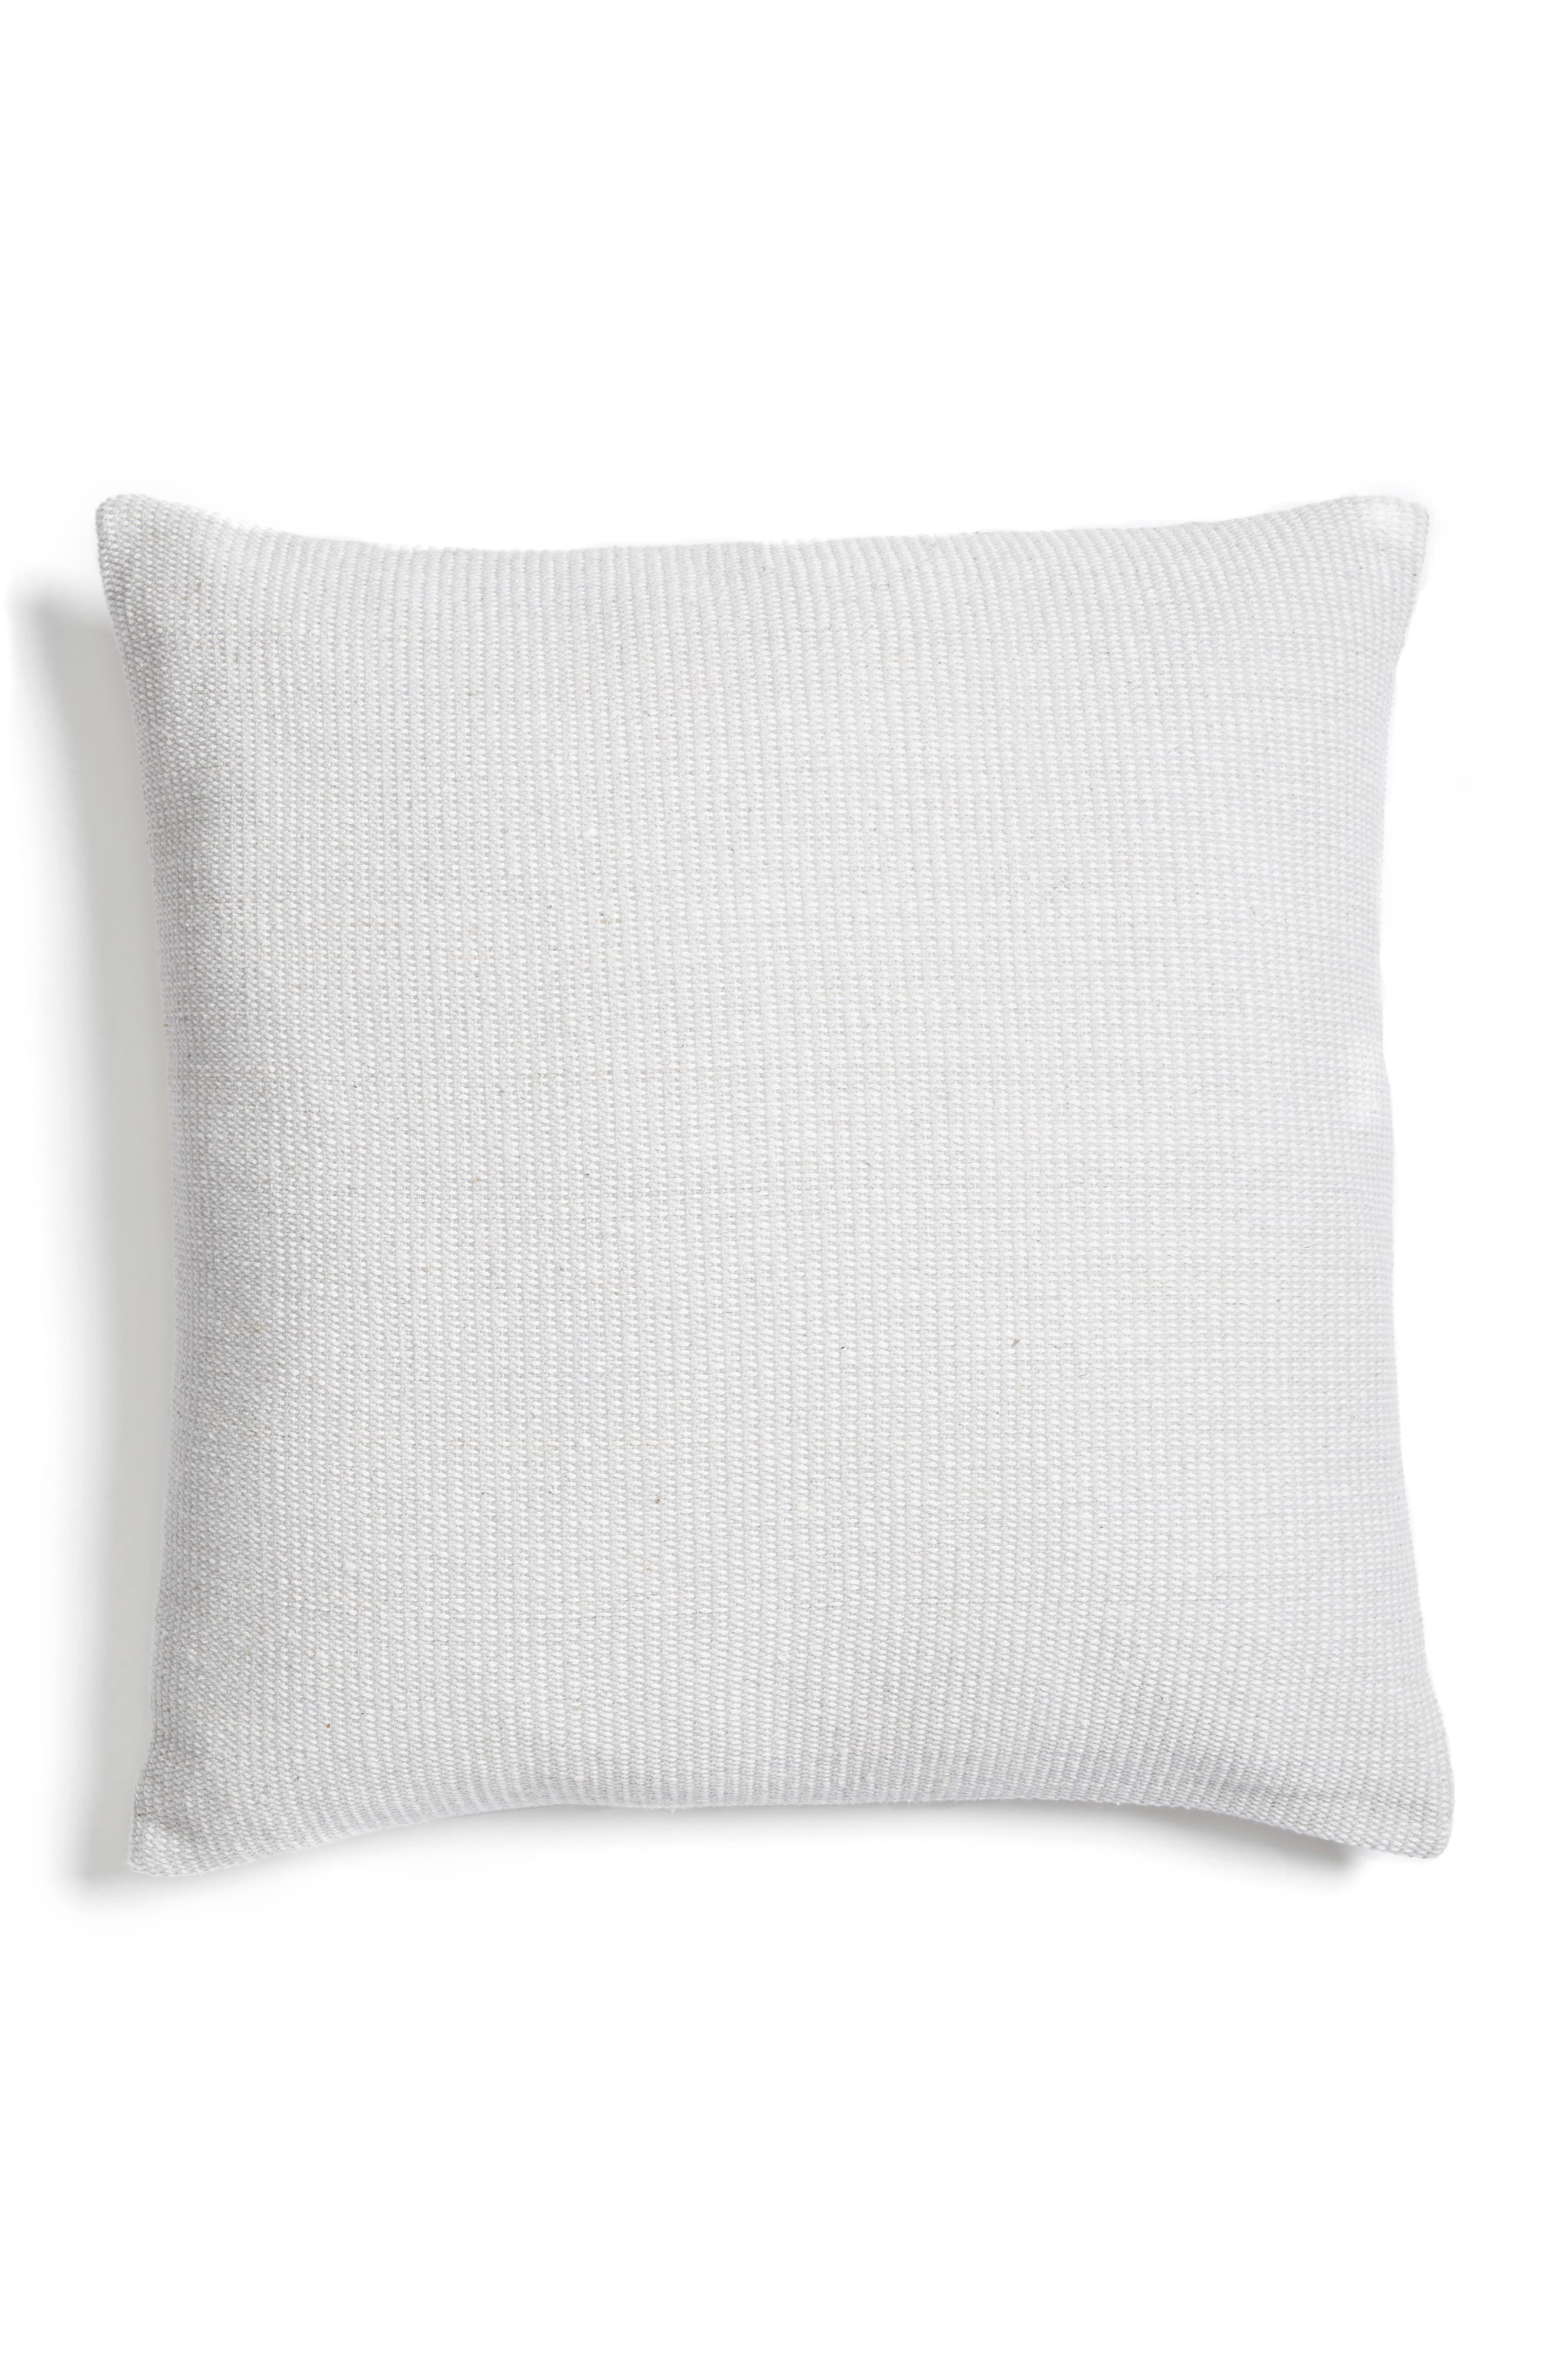 Structure Pillow,                             Main thumbnail 1, color,                             White/ Grey